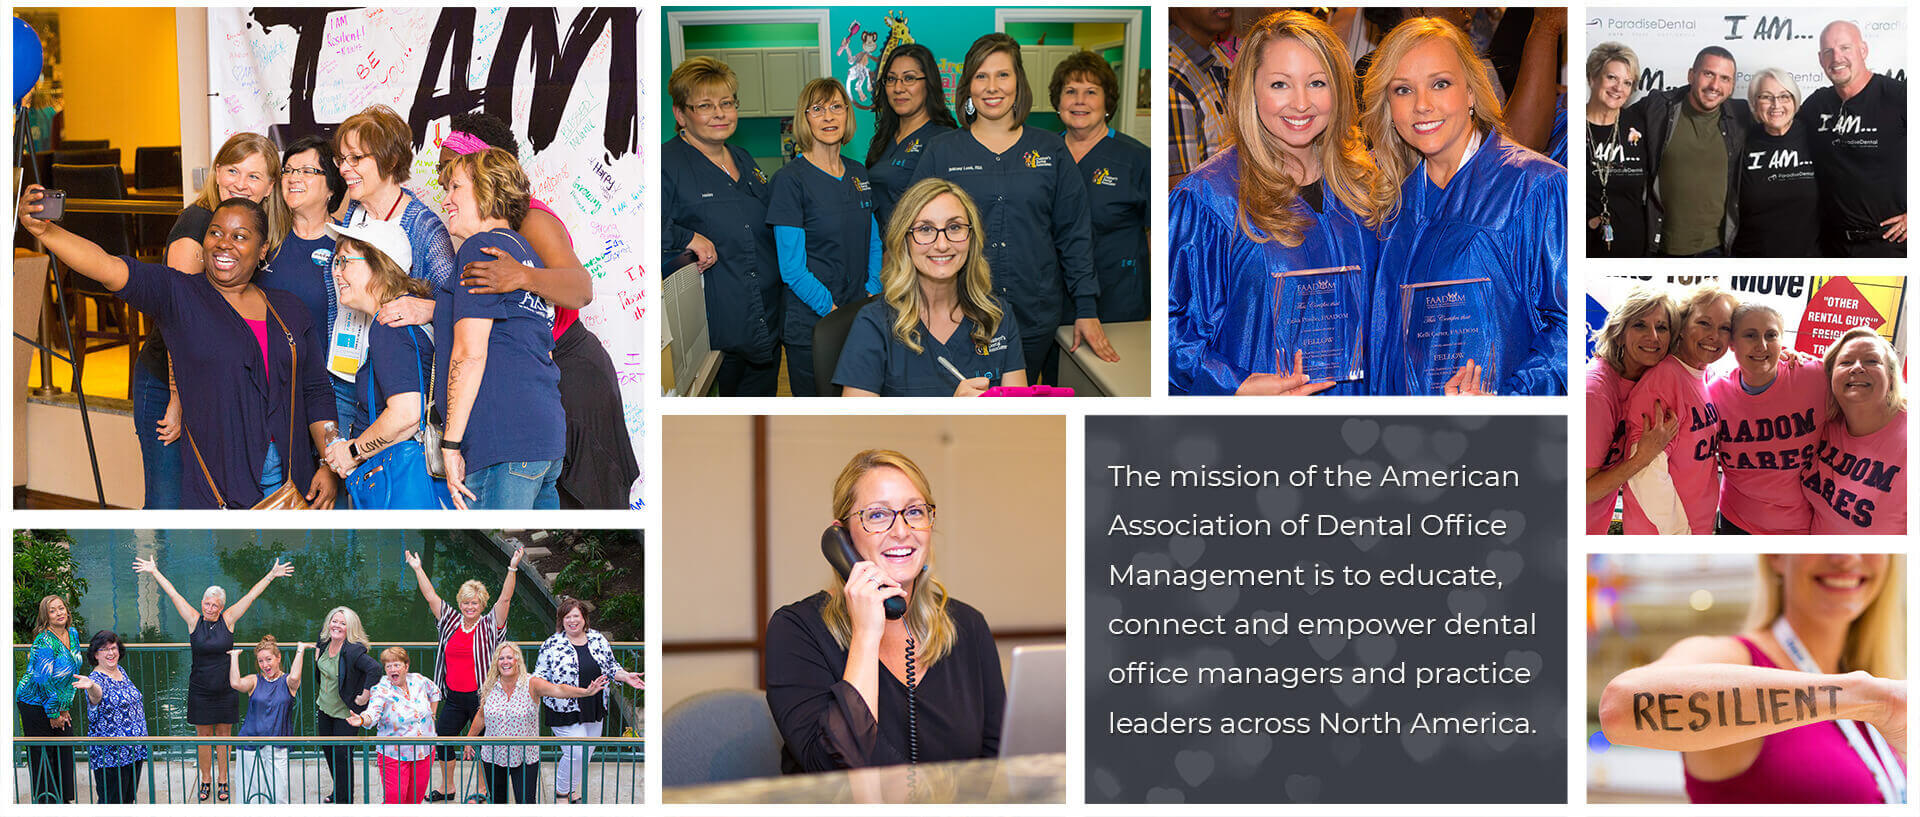 AADOM member collage with their mission statement.